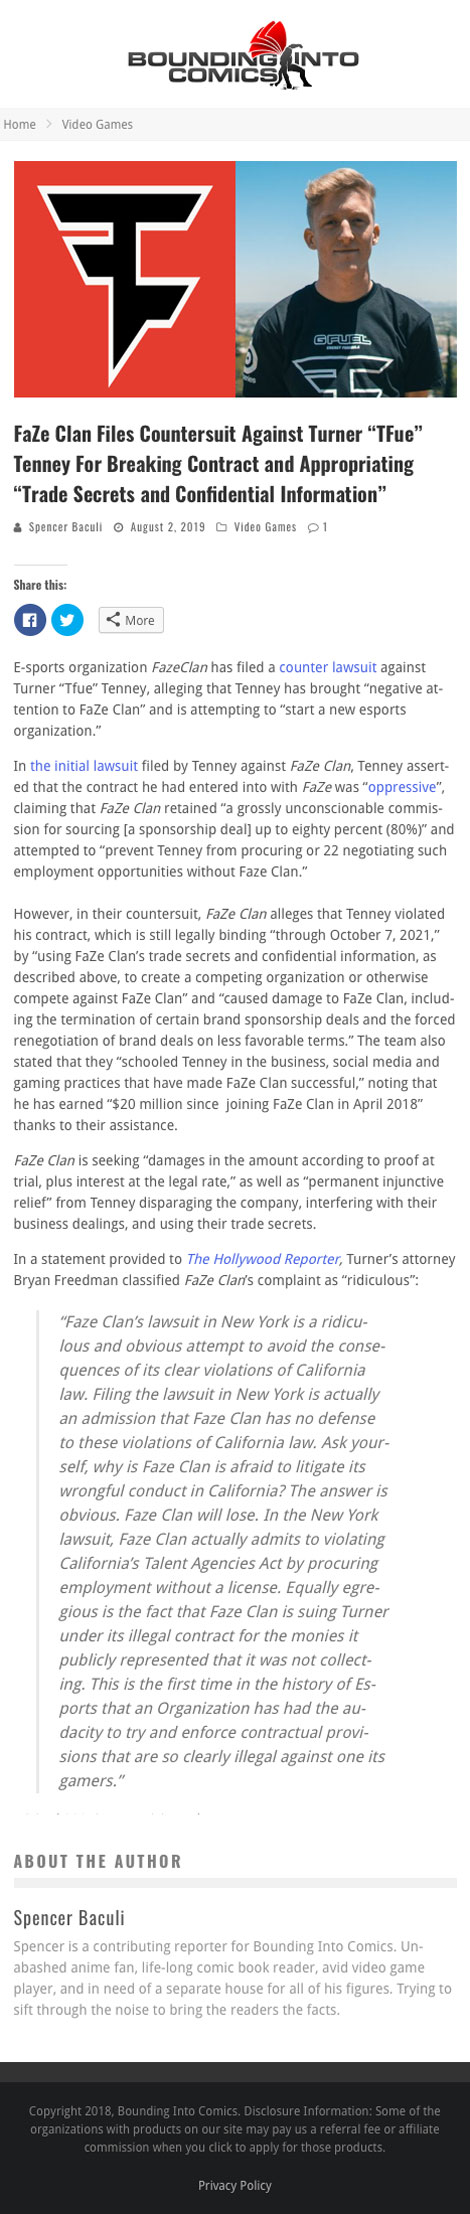 "FaZe Clan Files Countersuit Against Turner ""TFue"" Tenney For Breaking Contract and Appropriating ""Trade Secrets and Confidential Information"" - article by BoundingIntoComics.com"